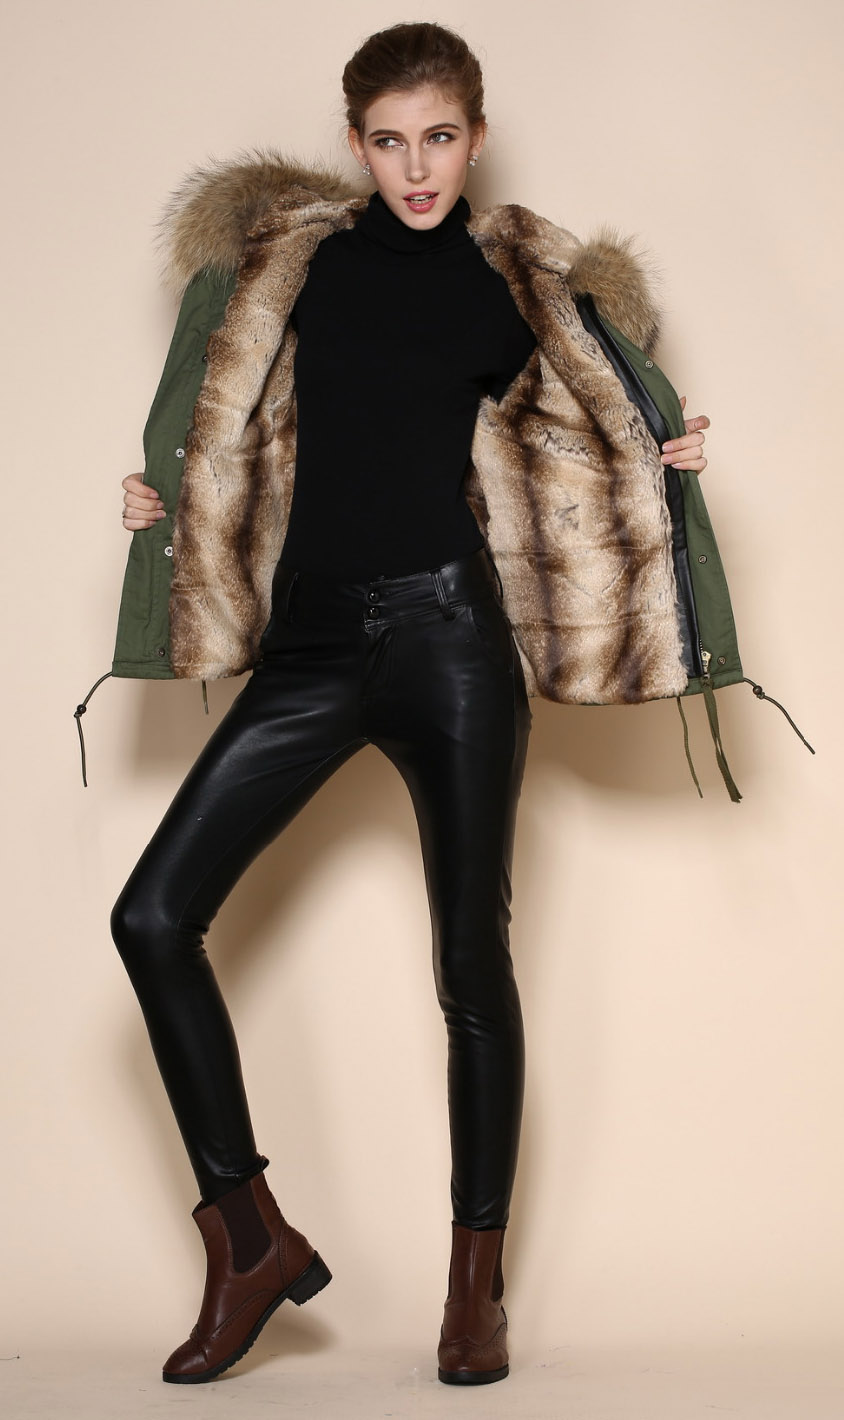 black-skinny-jeans-black-sweater-bun-parka-howtowear-fashion-style-outfit-fall-winter-leather-green-olive-jacket-coat-turtleneck-brown-shoe-boots-hairr-weekend.jpg